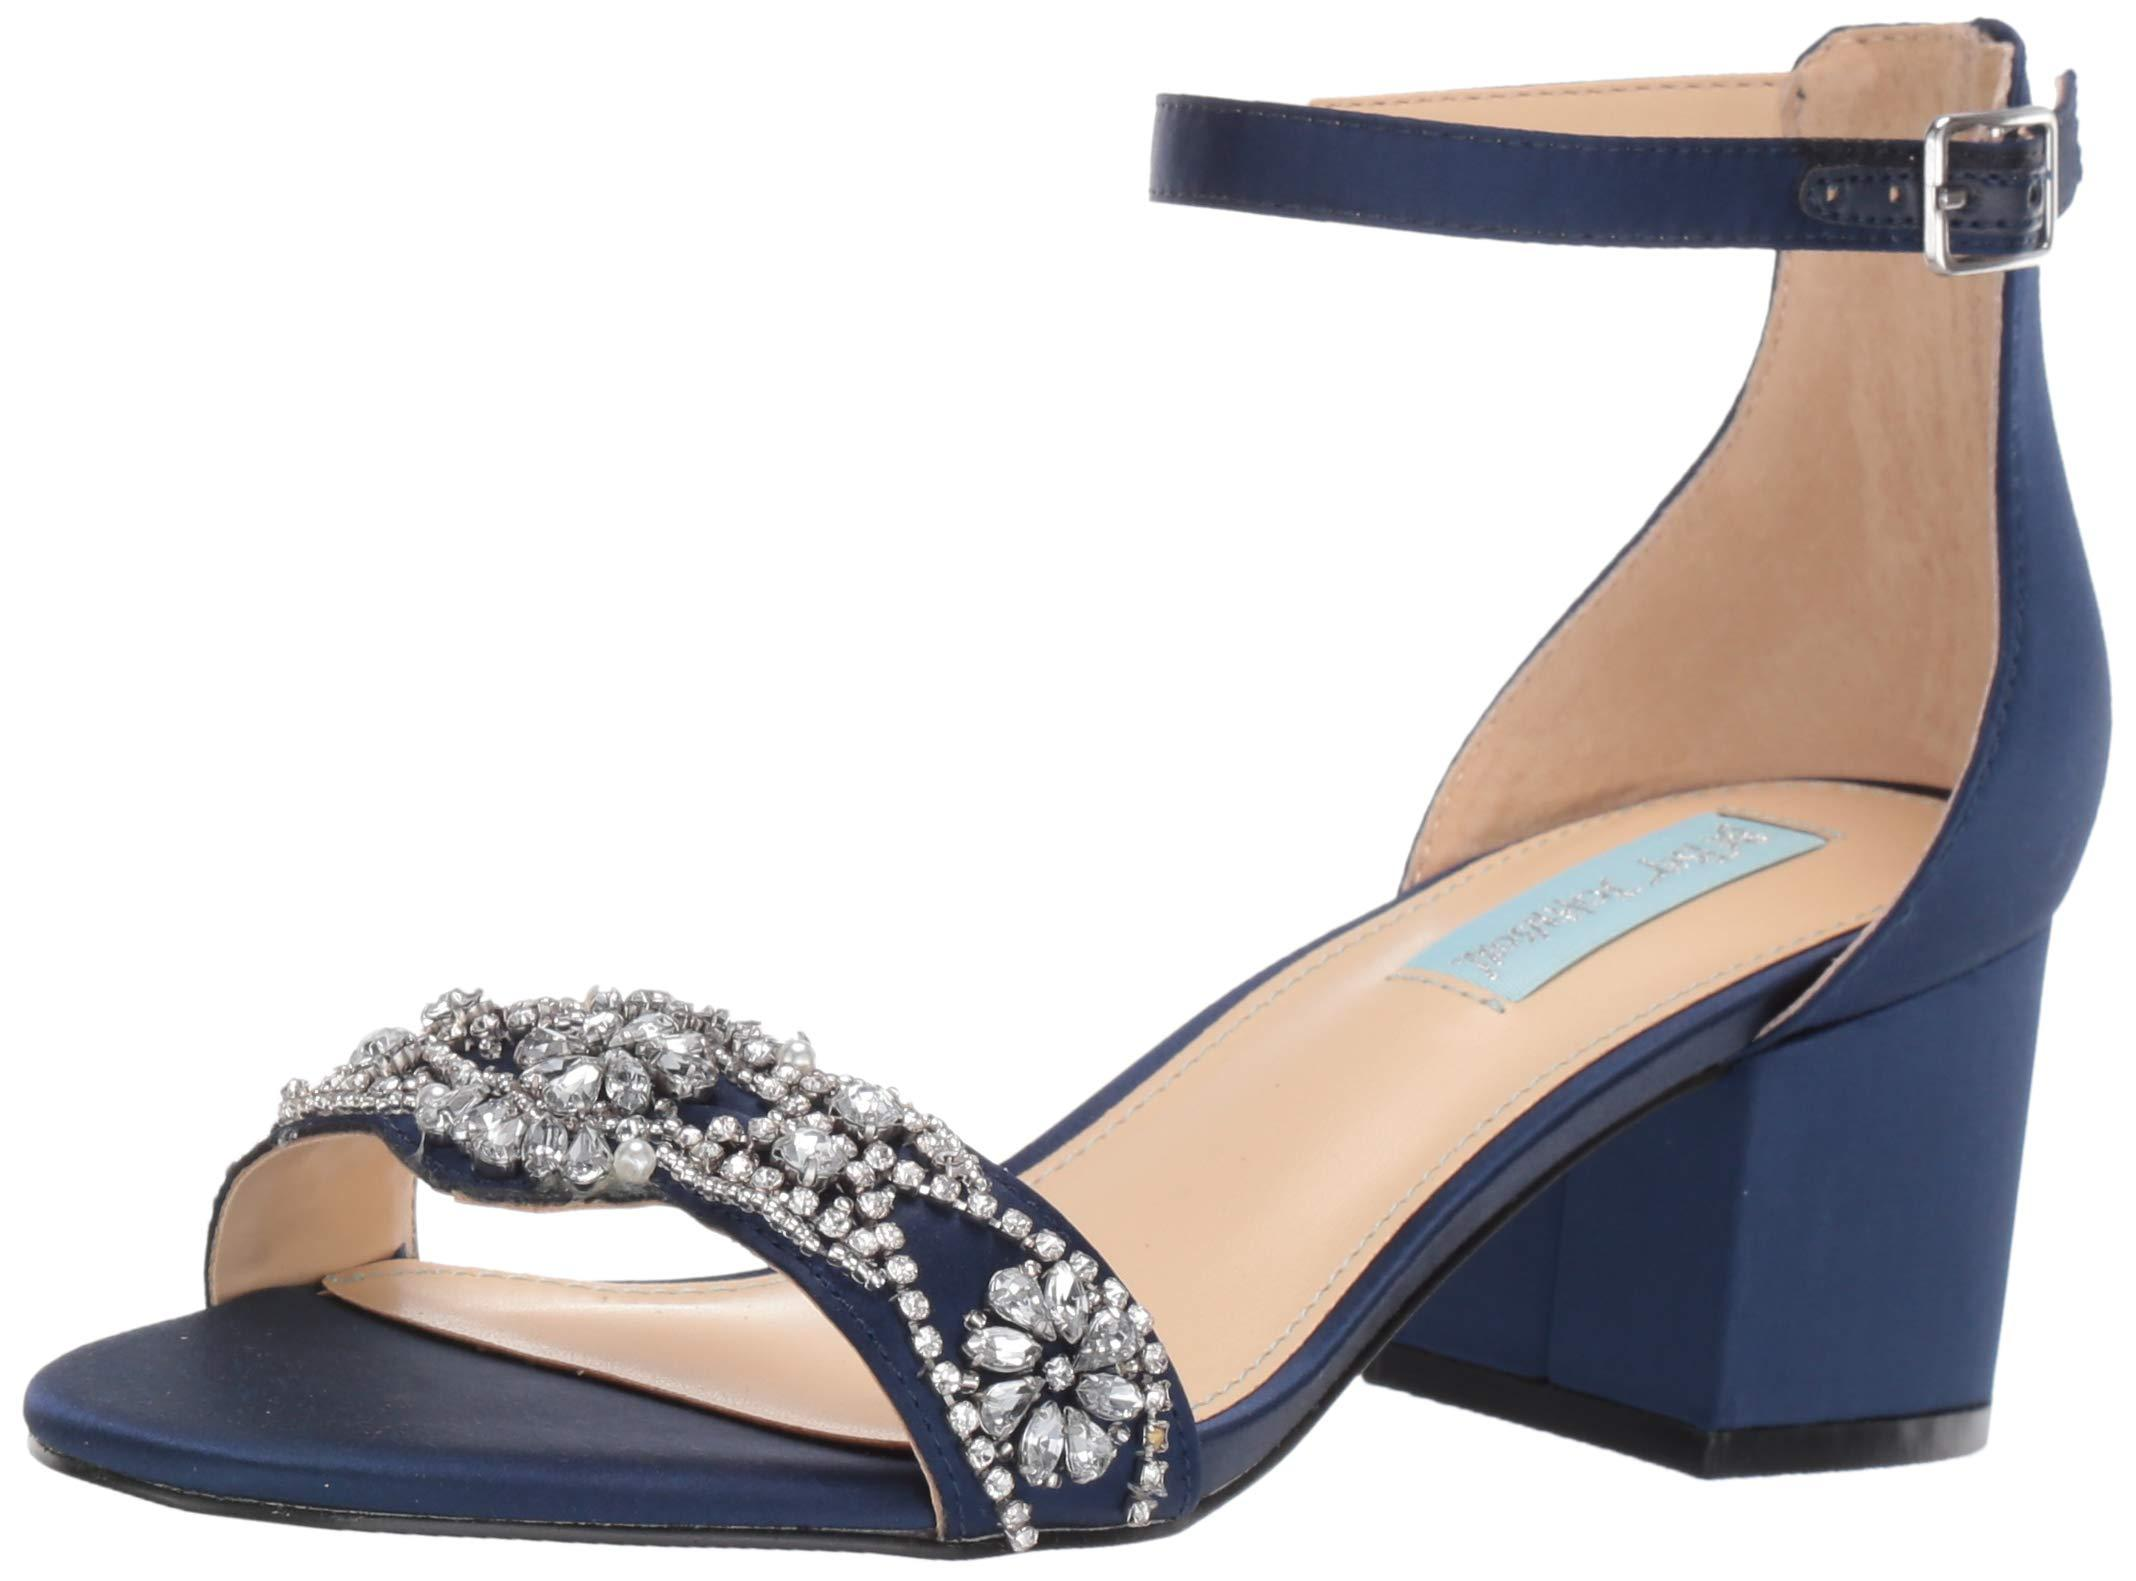 Blue by Betsey Johnson Womens Sb-Brie Heeled Sandal, Pale